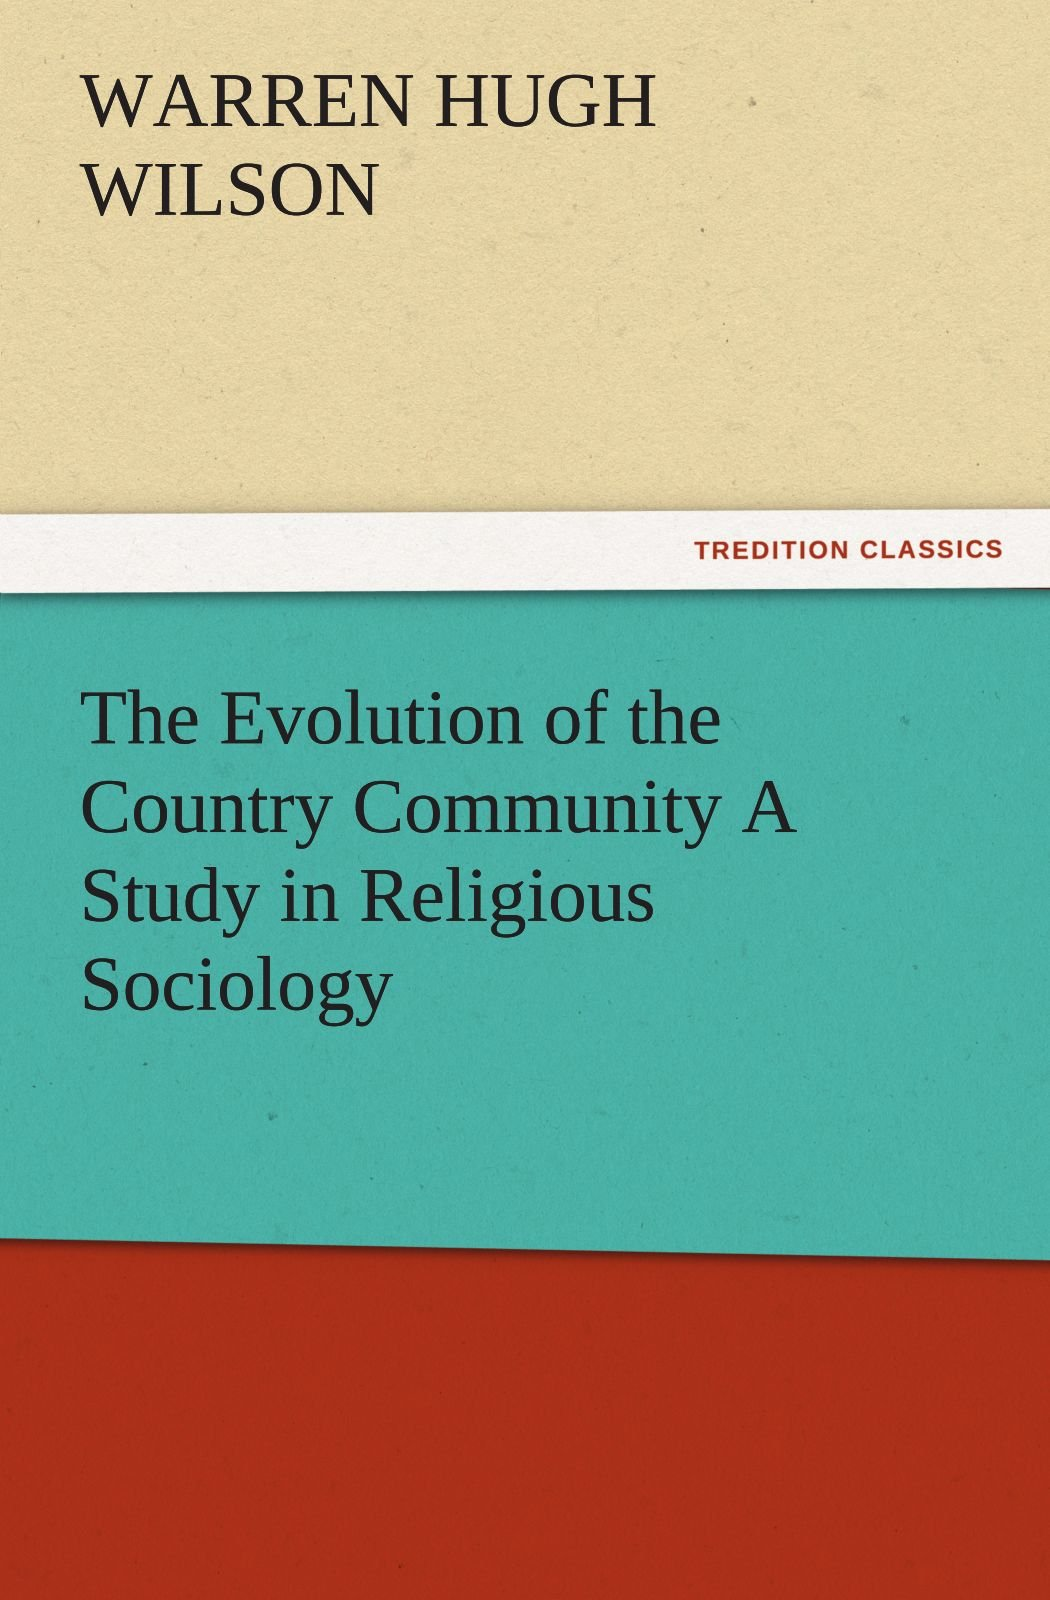 Read Online The Evolution of the Country Community A Study in Religious Sociology (TREDITION CLASSICS) pdf